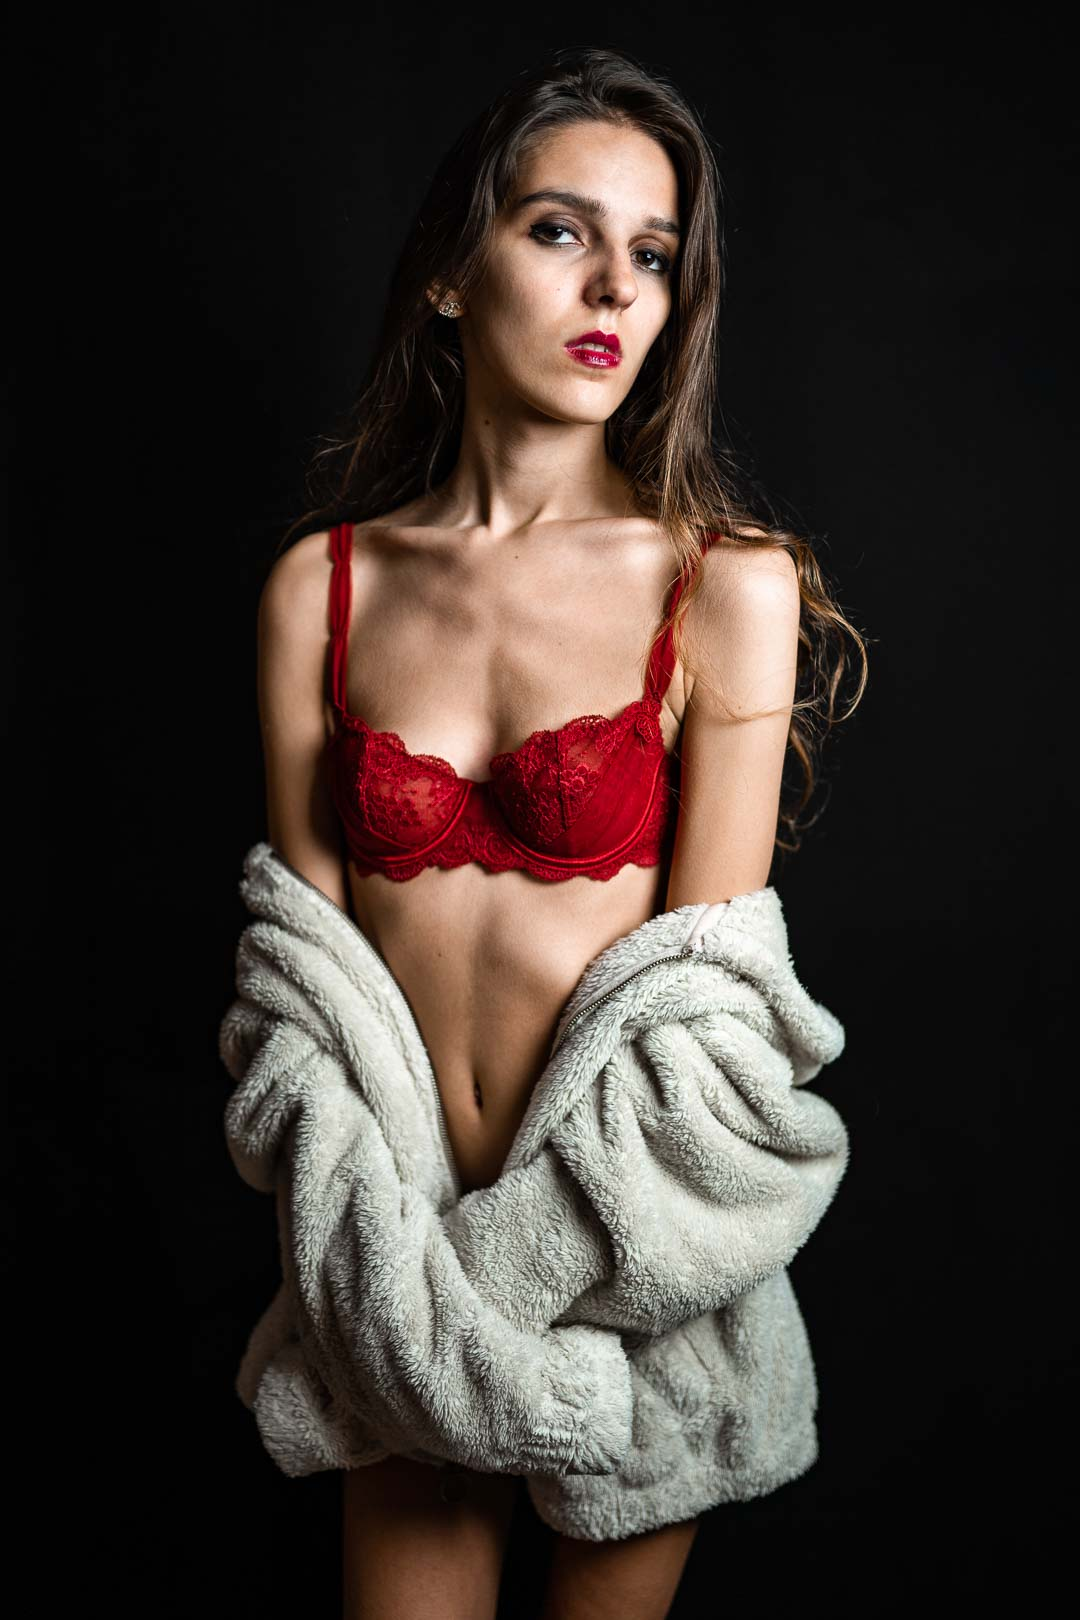 Brown haired woman model in red lingerie